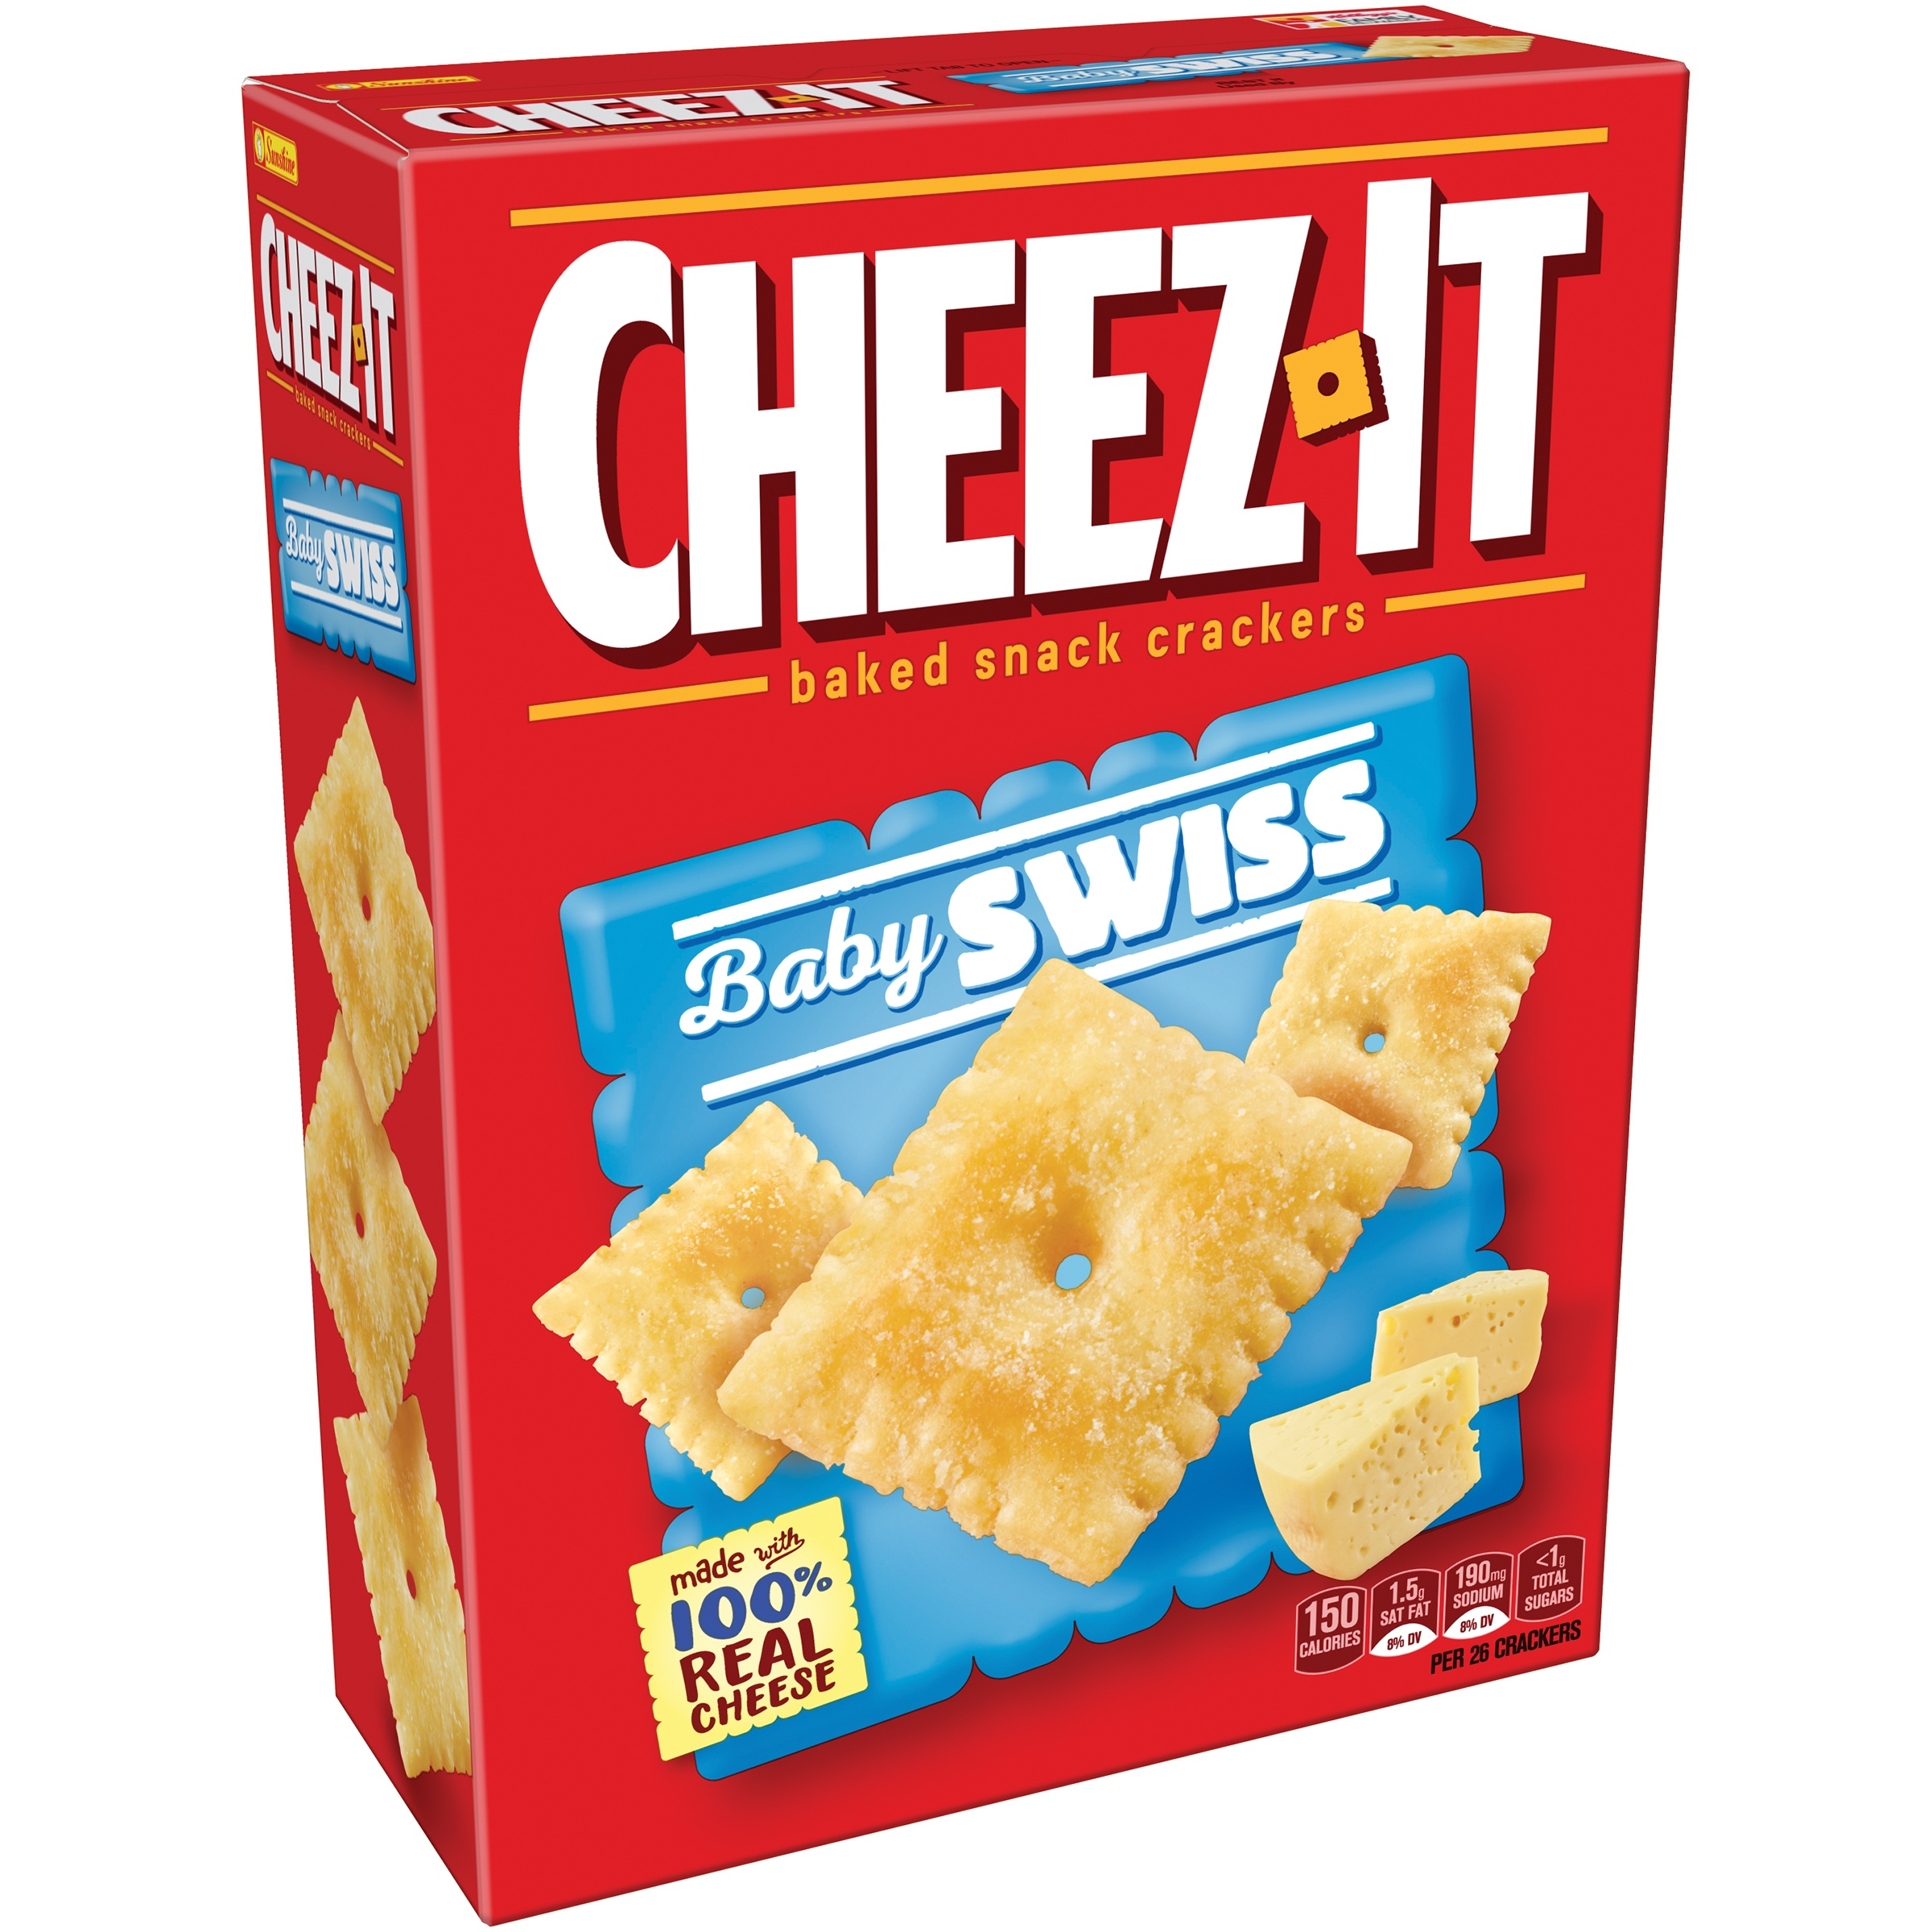 Cheez-It® Baby Swiss Baked Snack Crackers 12.4 oz. Box